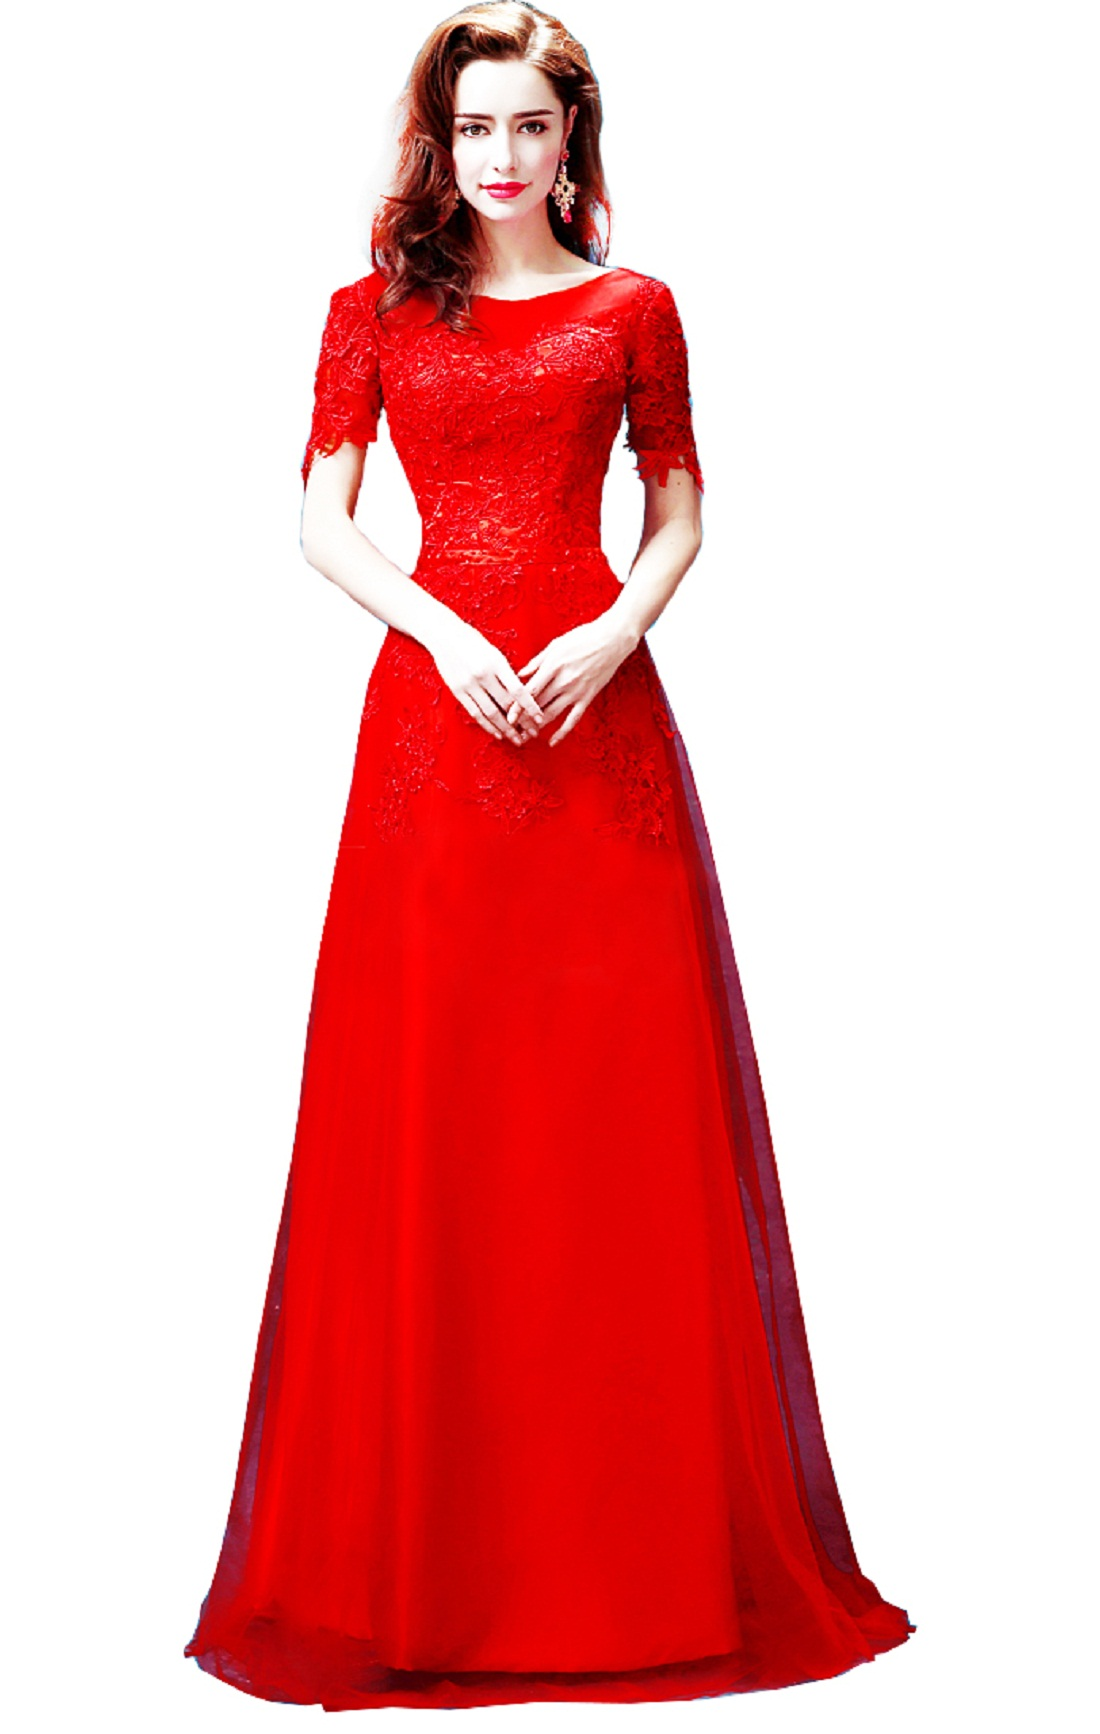 Red Lace Bridesmaid Dress Party Dress Cocktail Dress Set